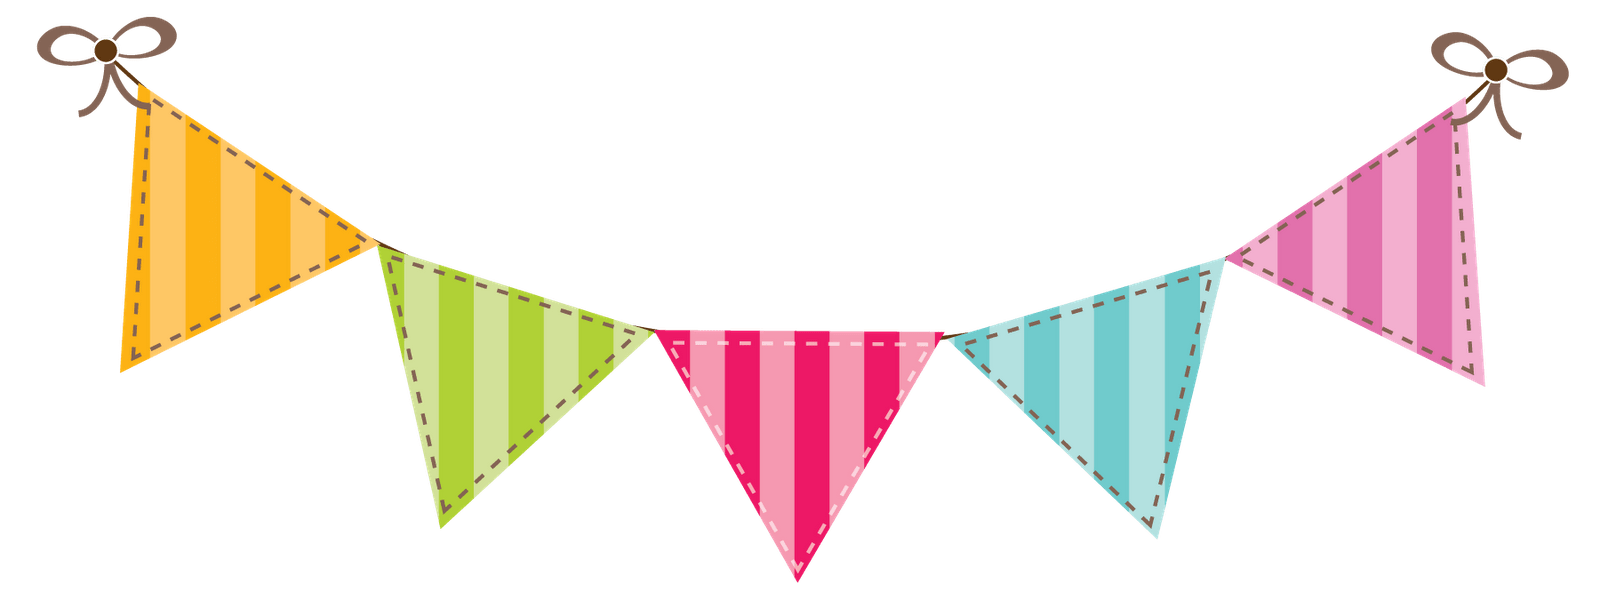 Clipart plane banner. Cute flag gallery by